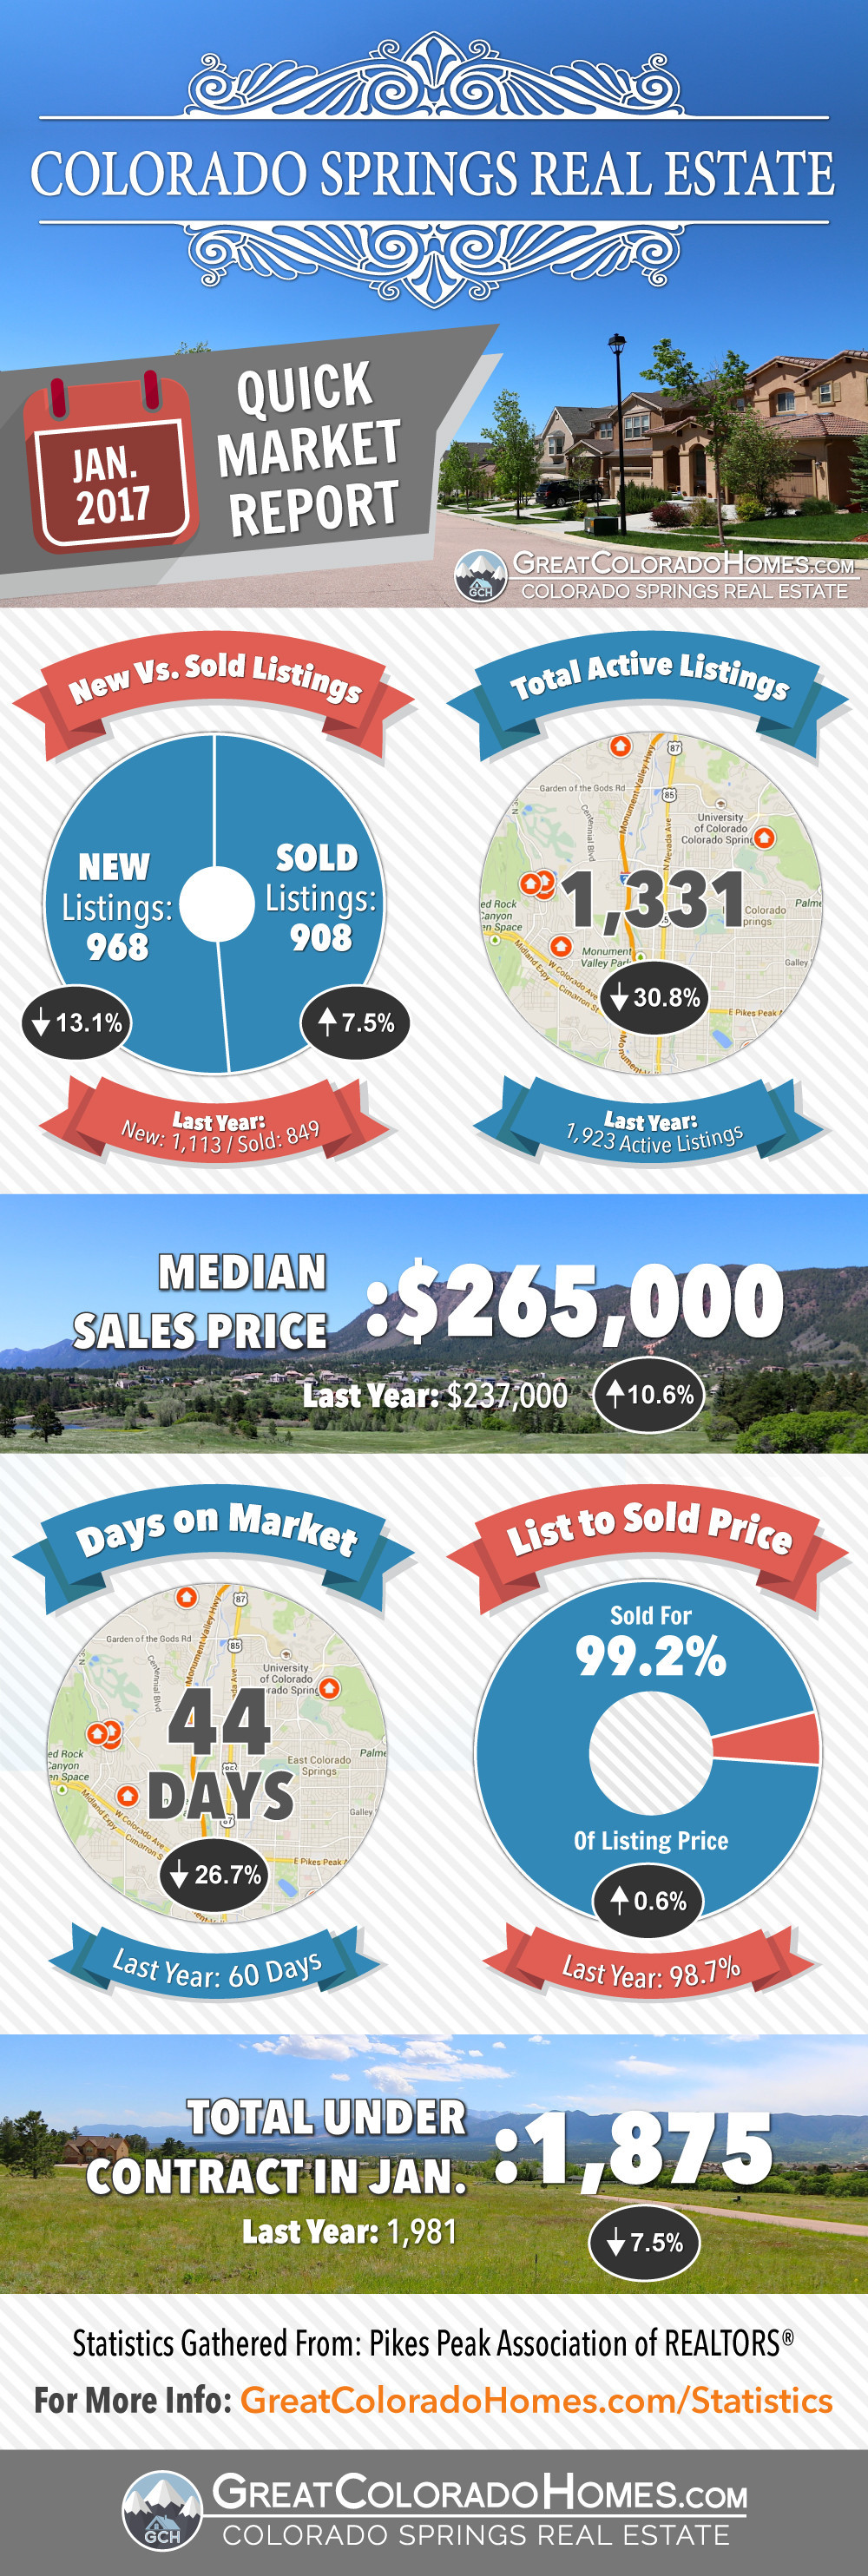 January 2017 Colorado Springs Real Estate Market Report